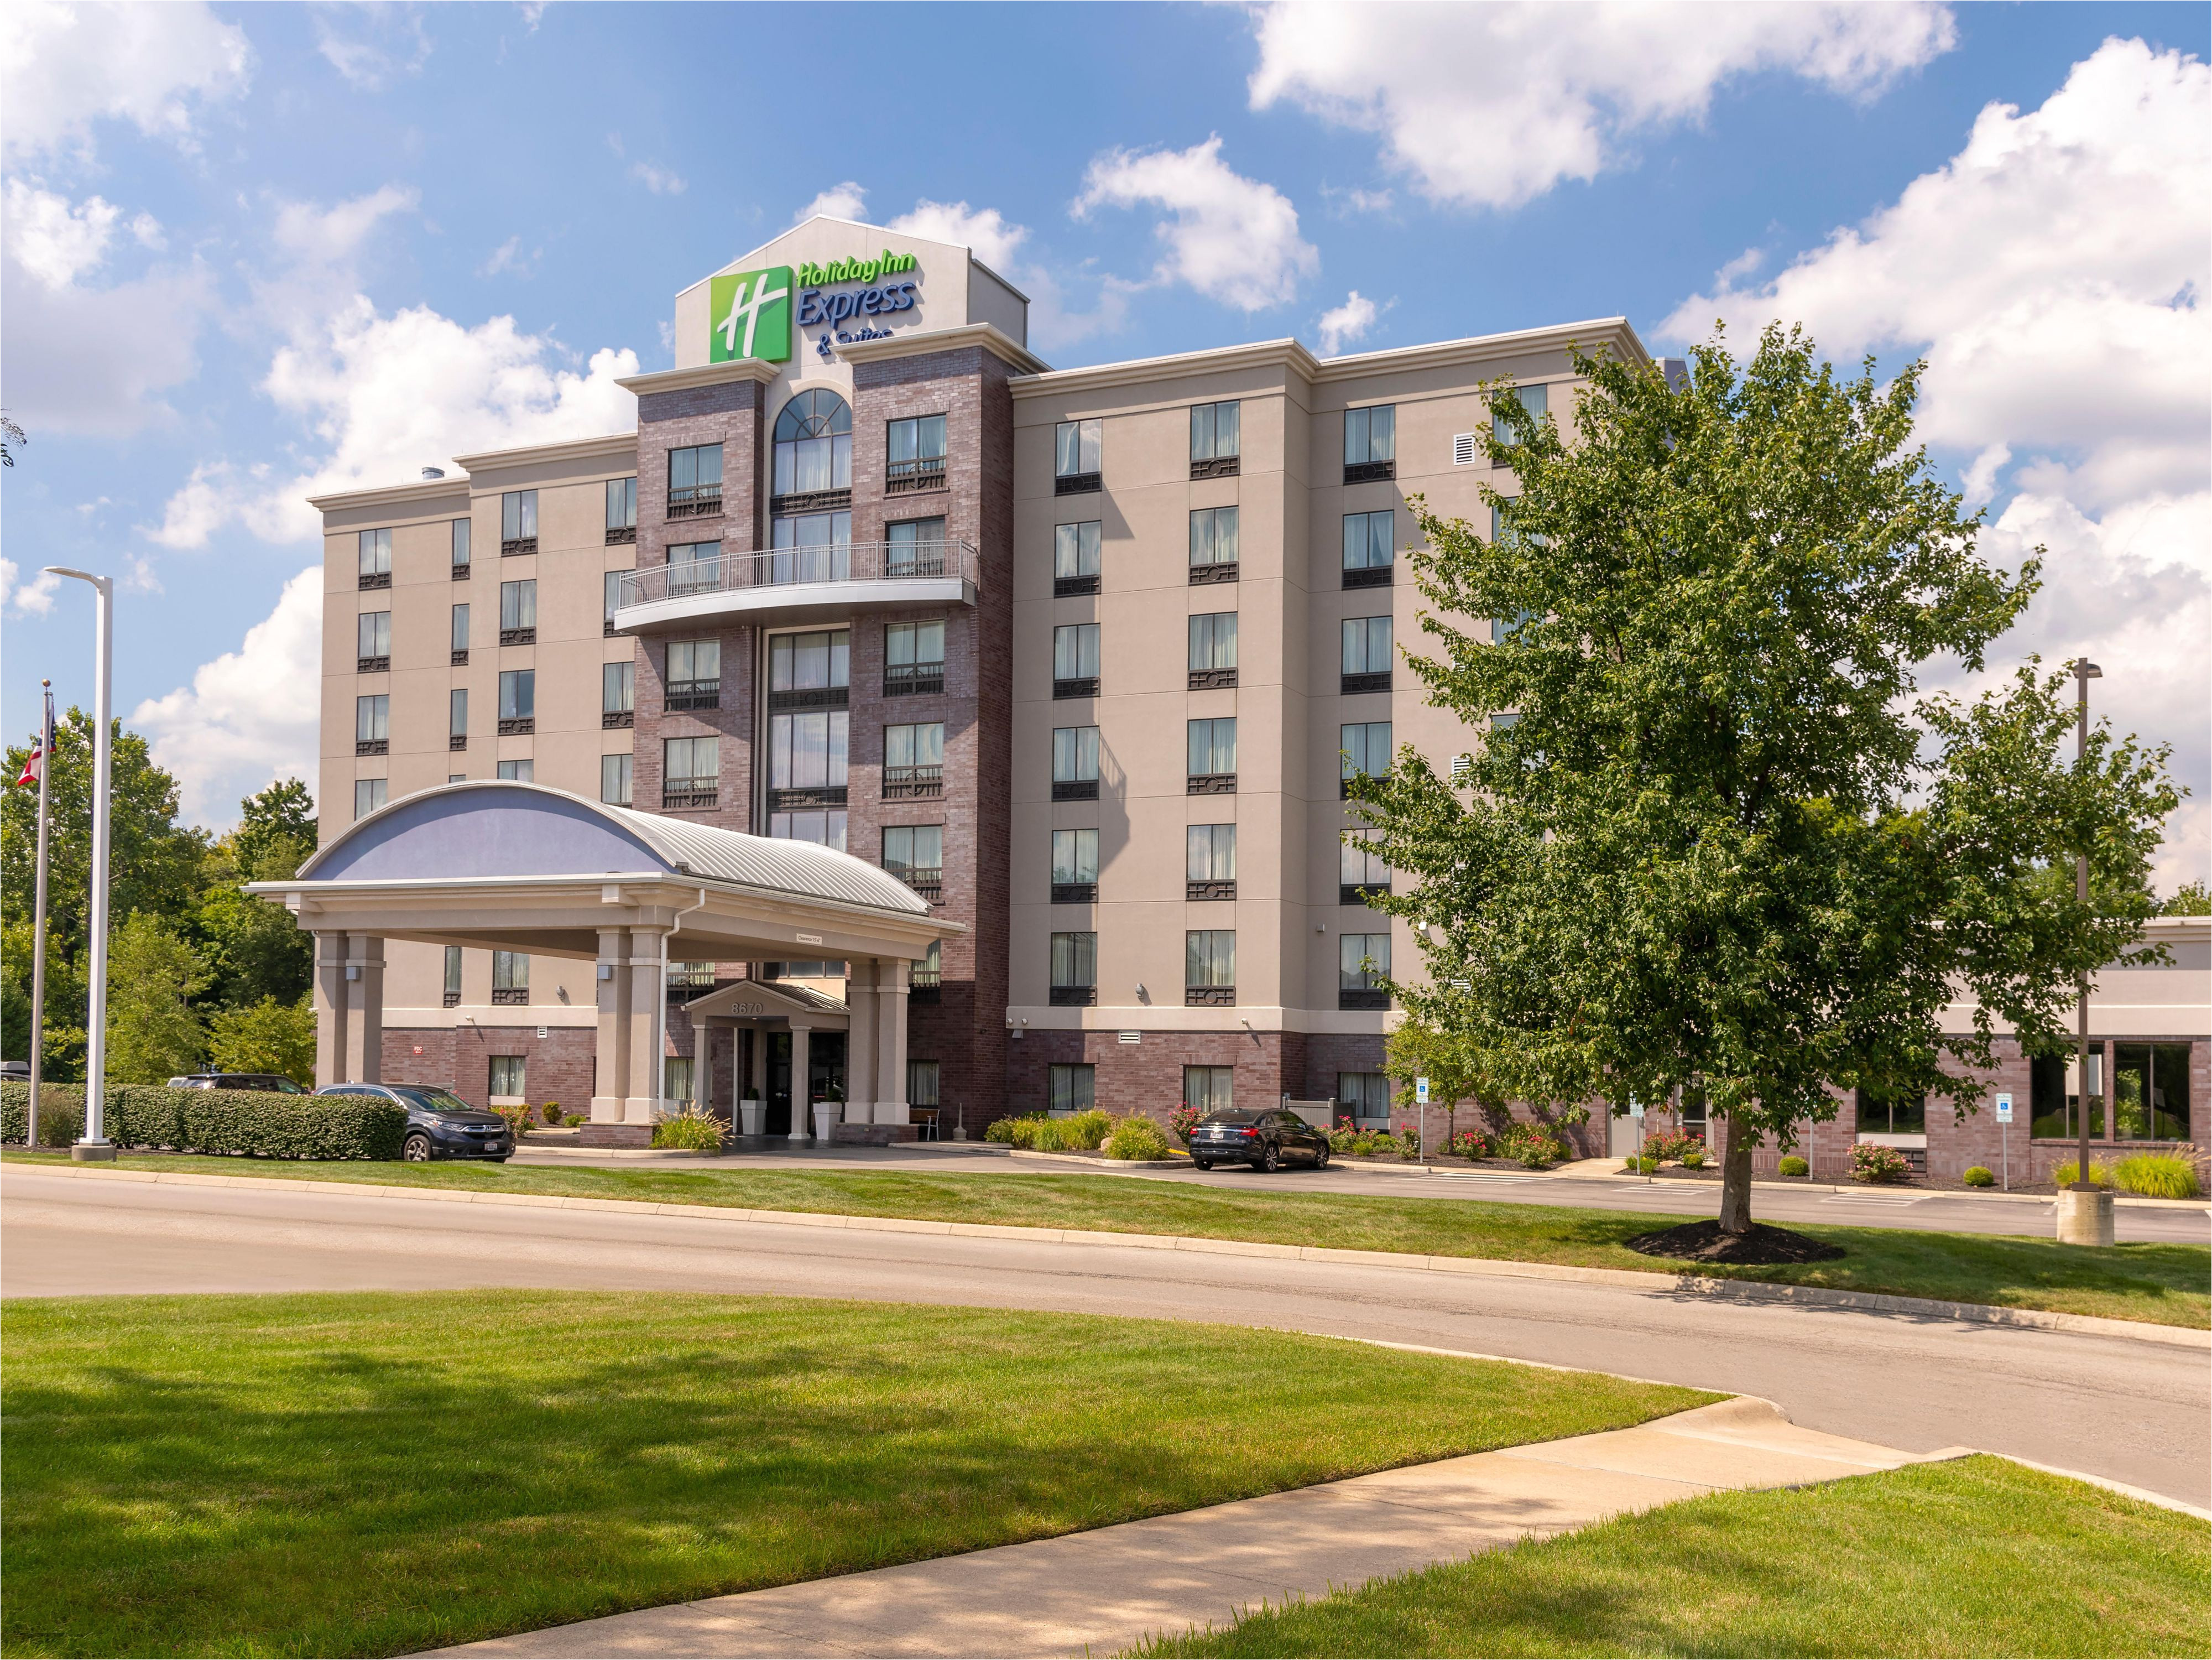 holiday inn express and suites columbus 5679078361 4x3